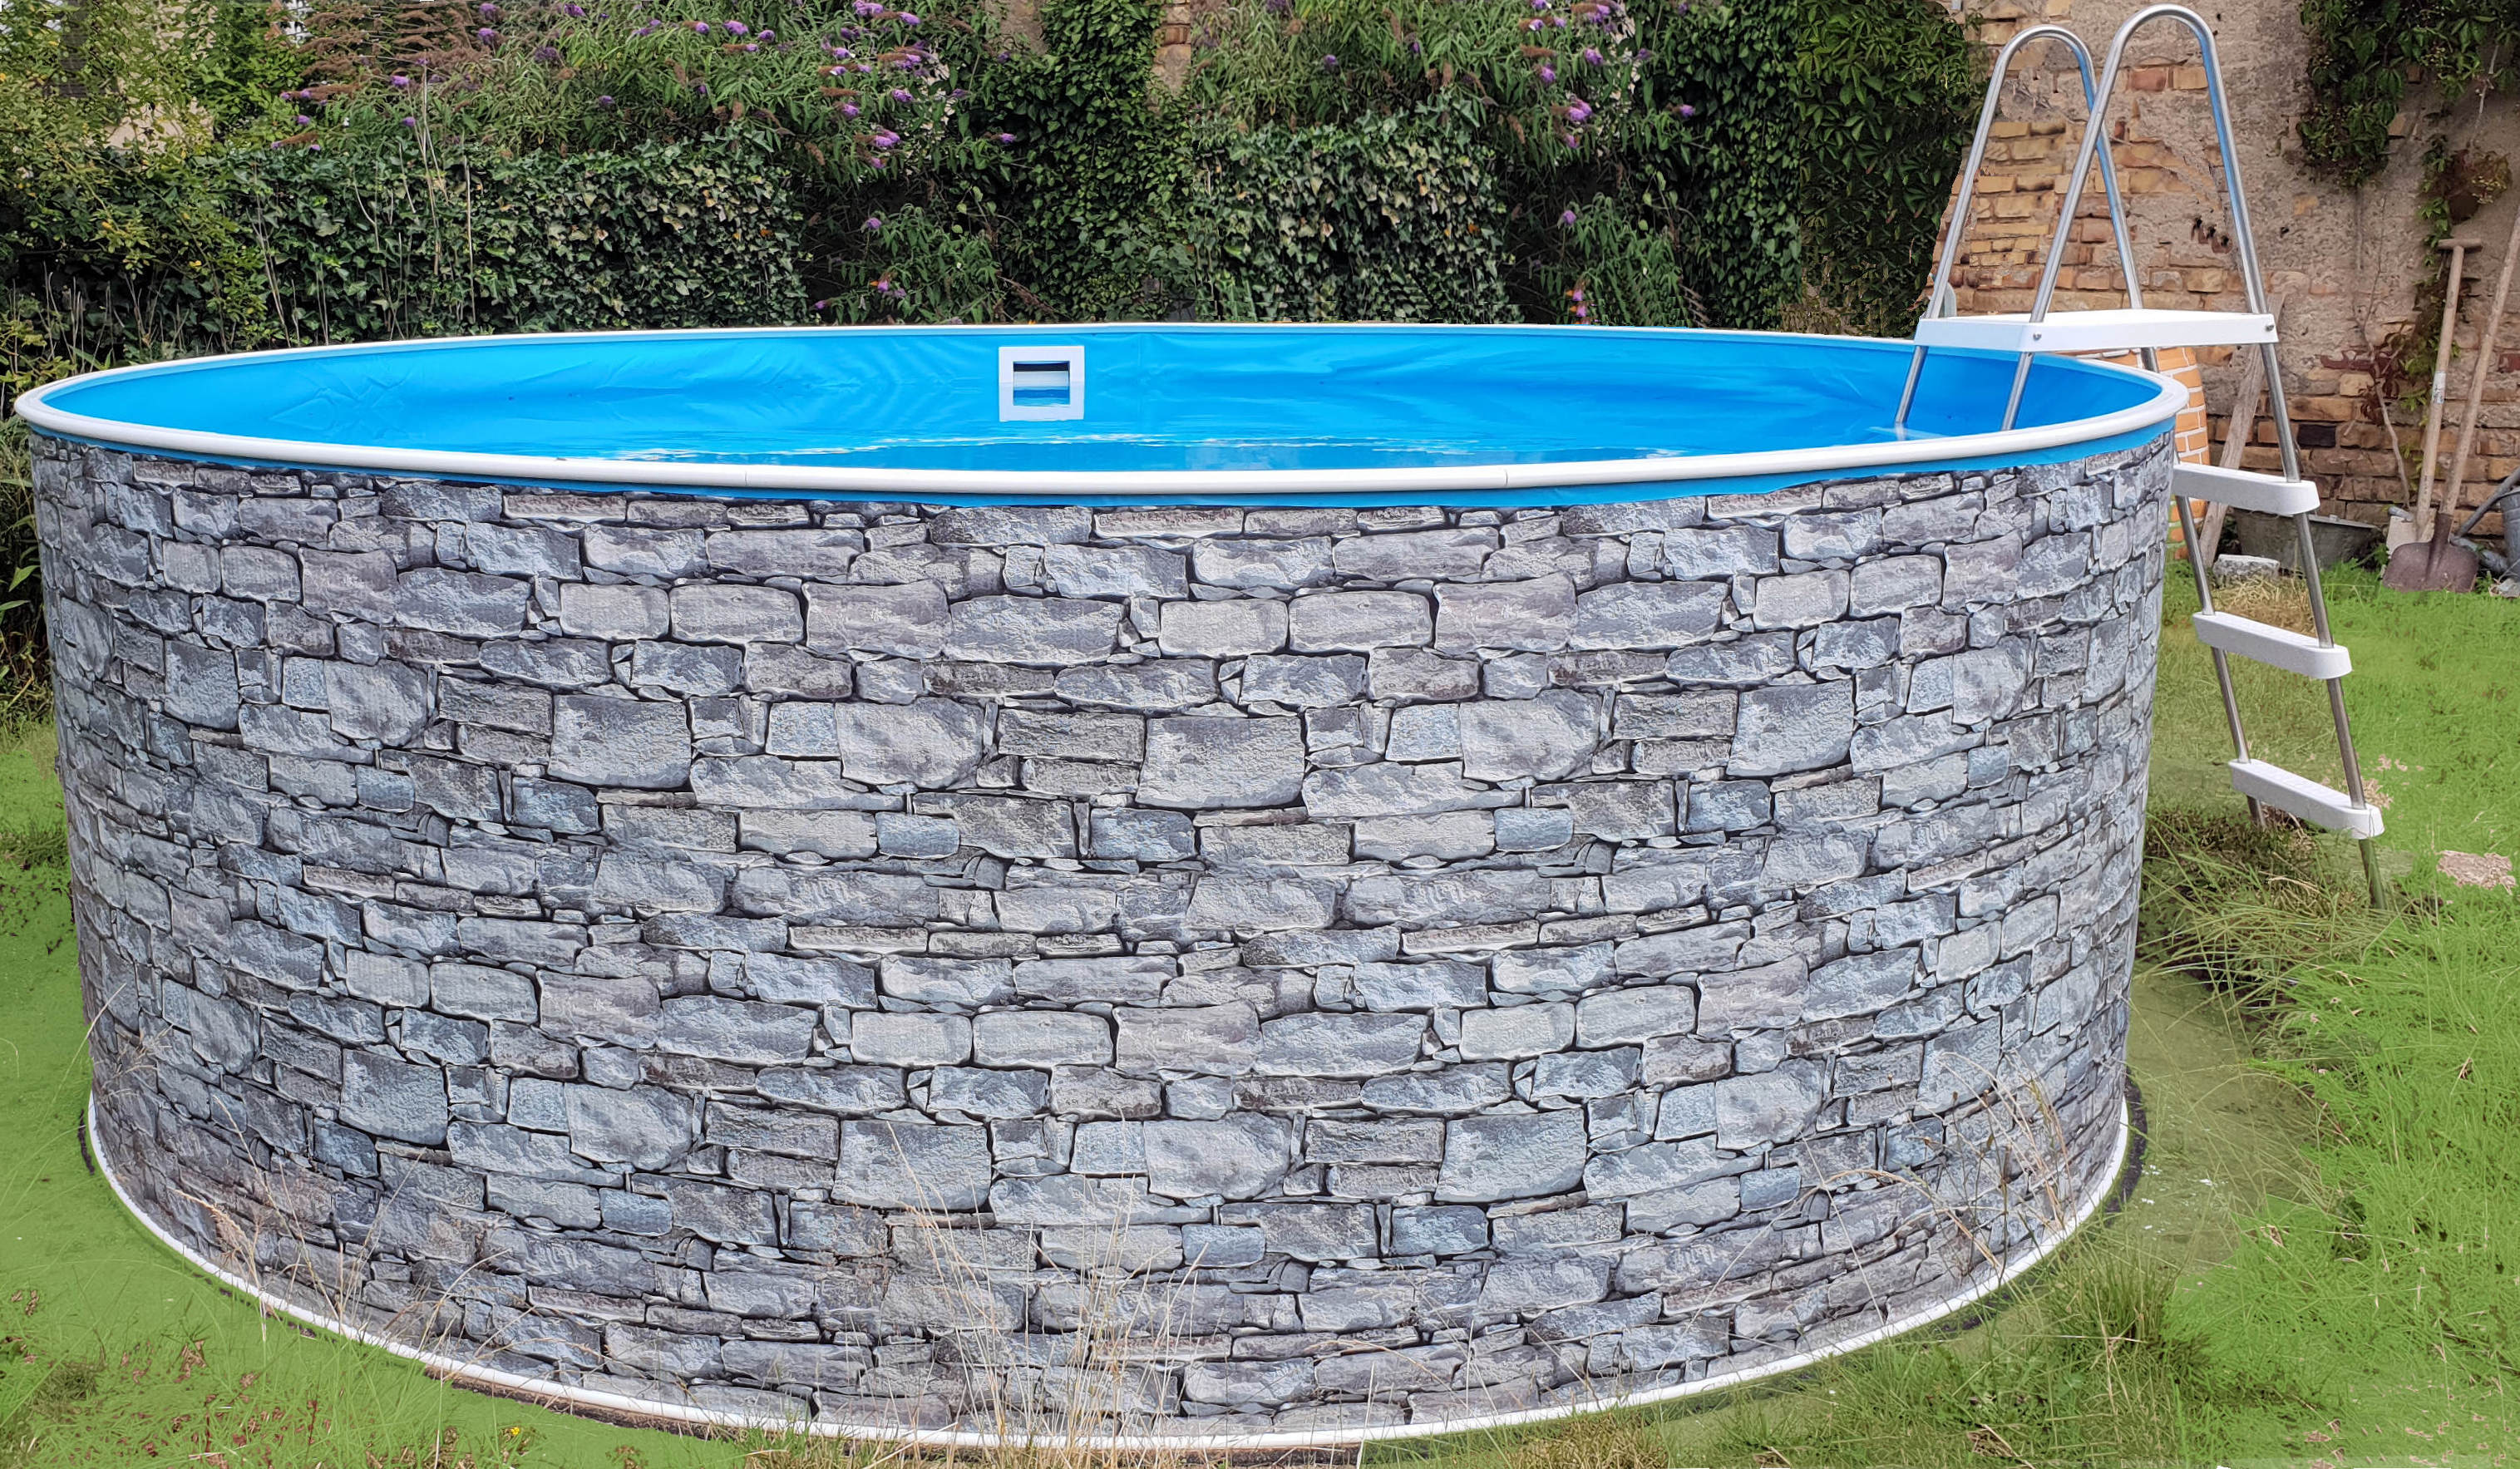 Pool Ohne Filteranlage Kaufen Swimmingpool Swimmingpools Pool Pools Rundbecken Ovalbecken